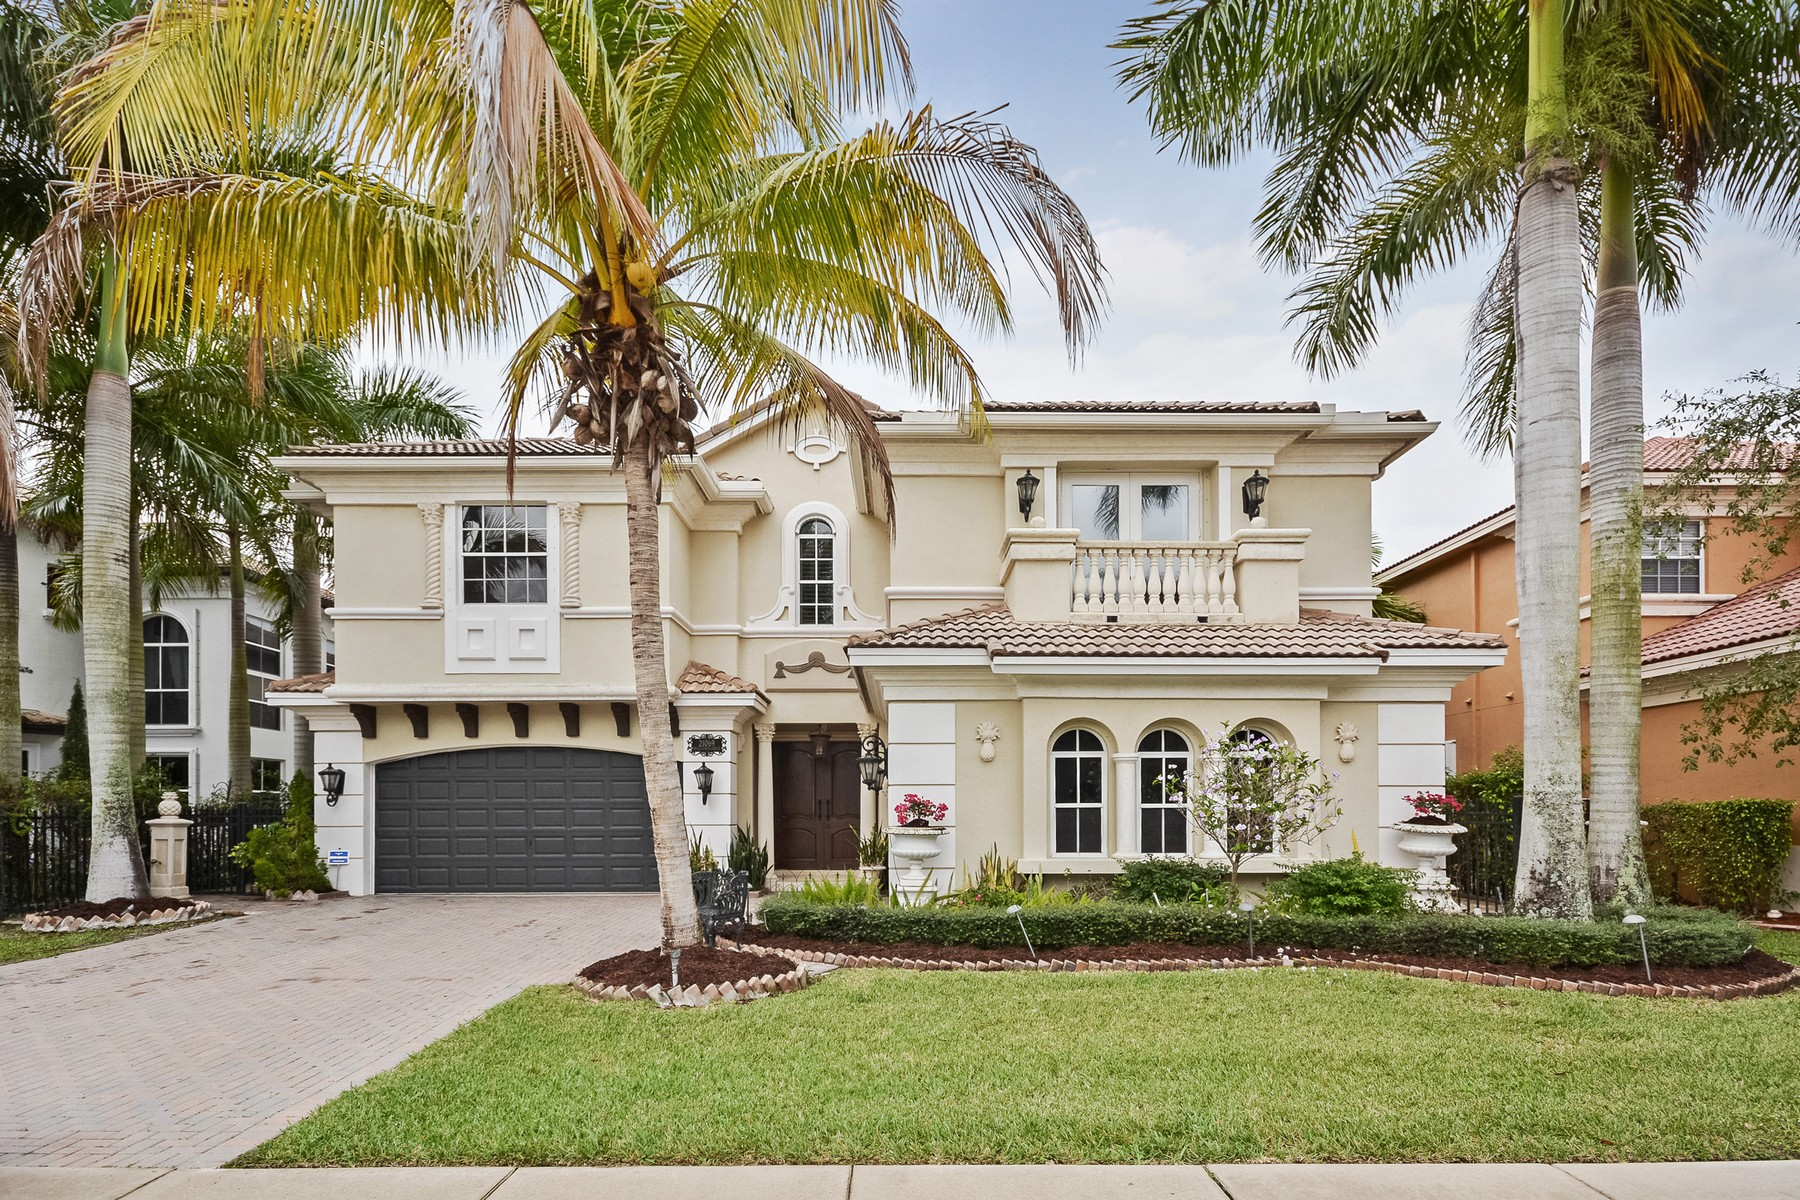 Single Family Home for Sale at 21069 Bella Vista Cir , Boca Raton, FL 33428 21069 Bella Vista Cir Boca Raton, Florida 33428 United States